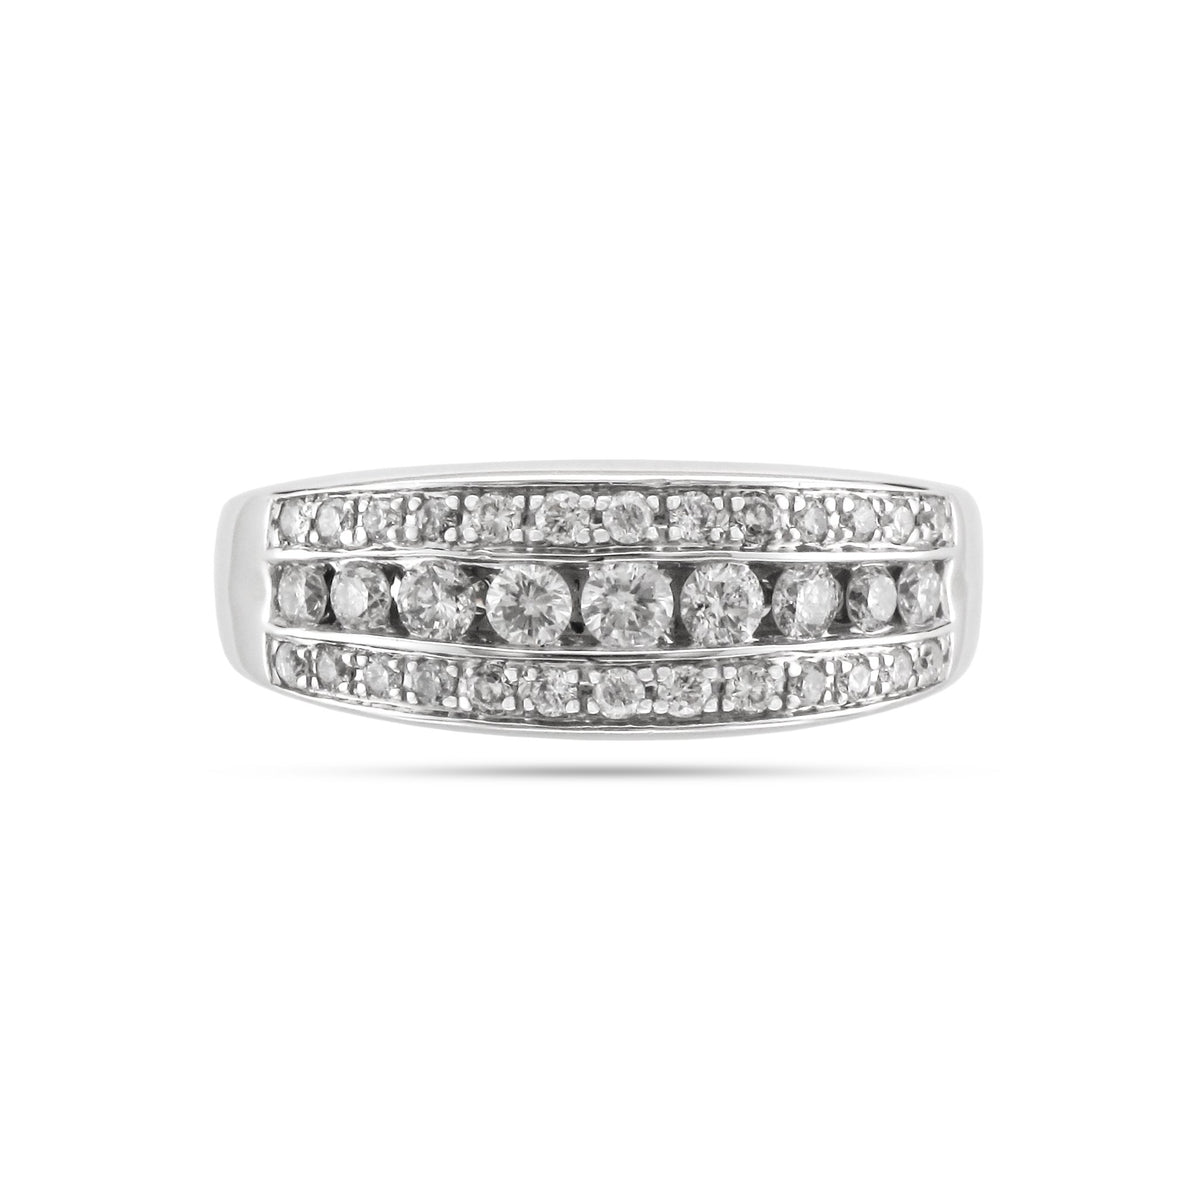 Vintage 18ct White Gold Three Row Diamond Ring